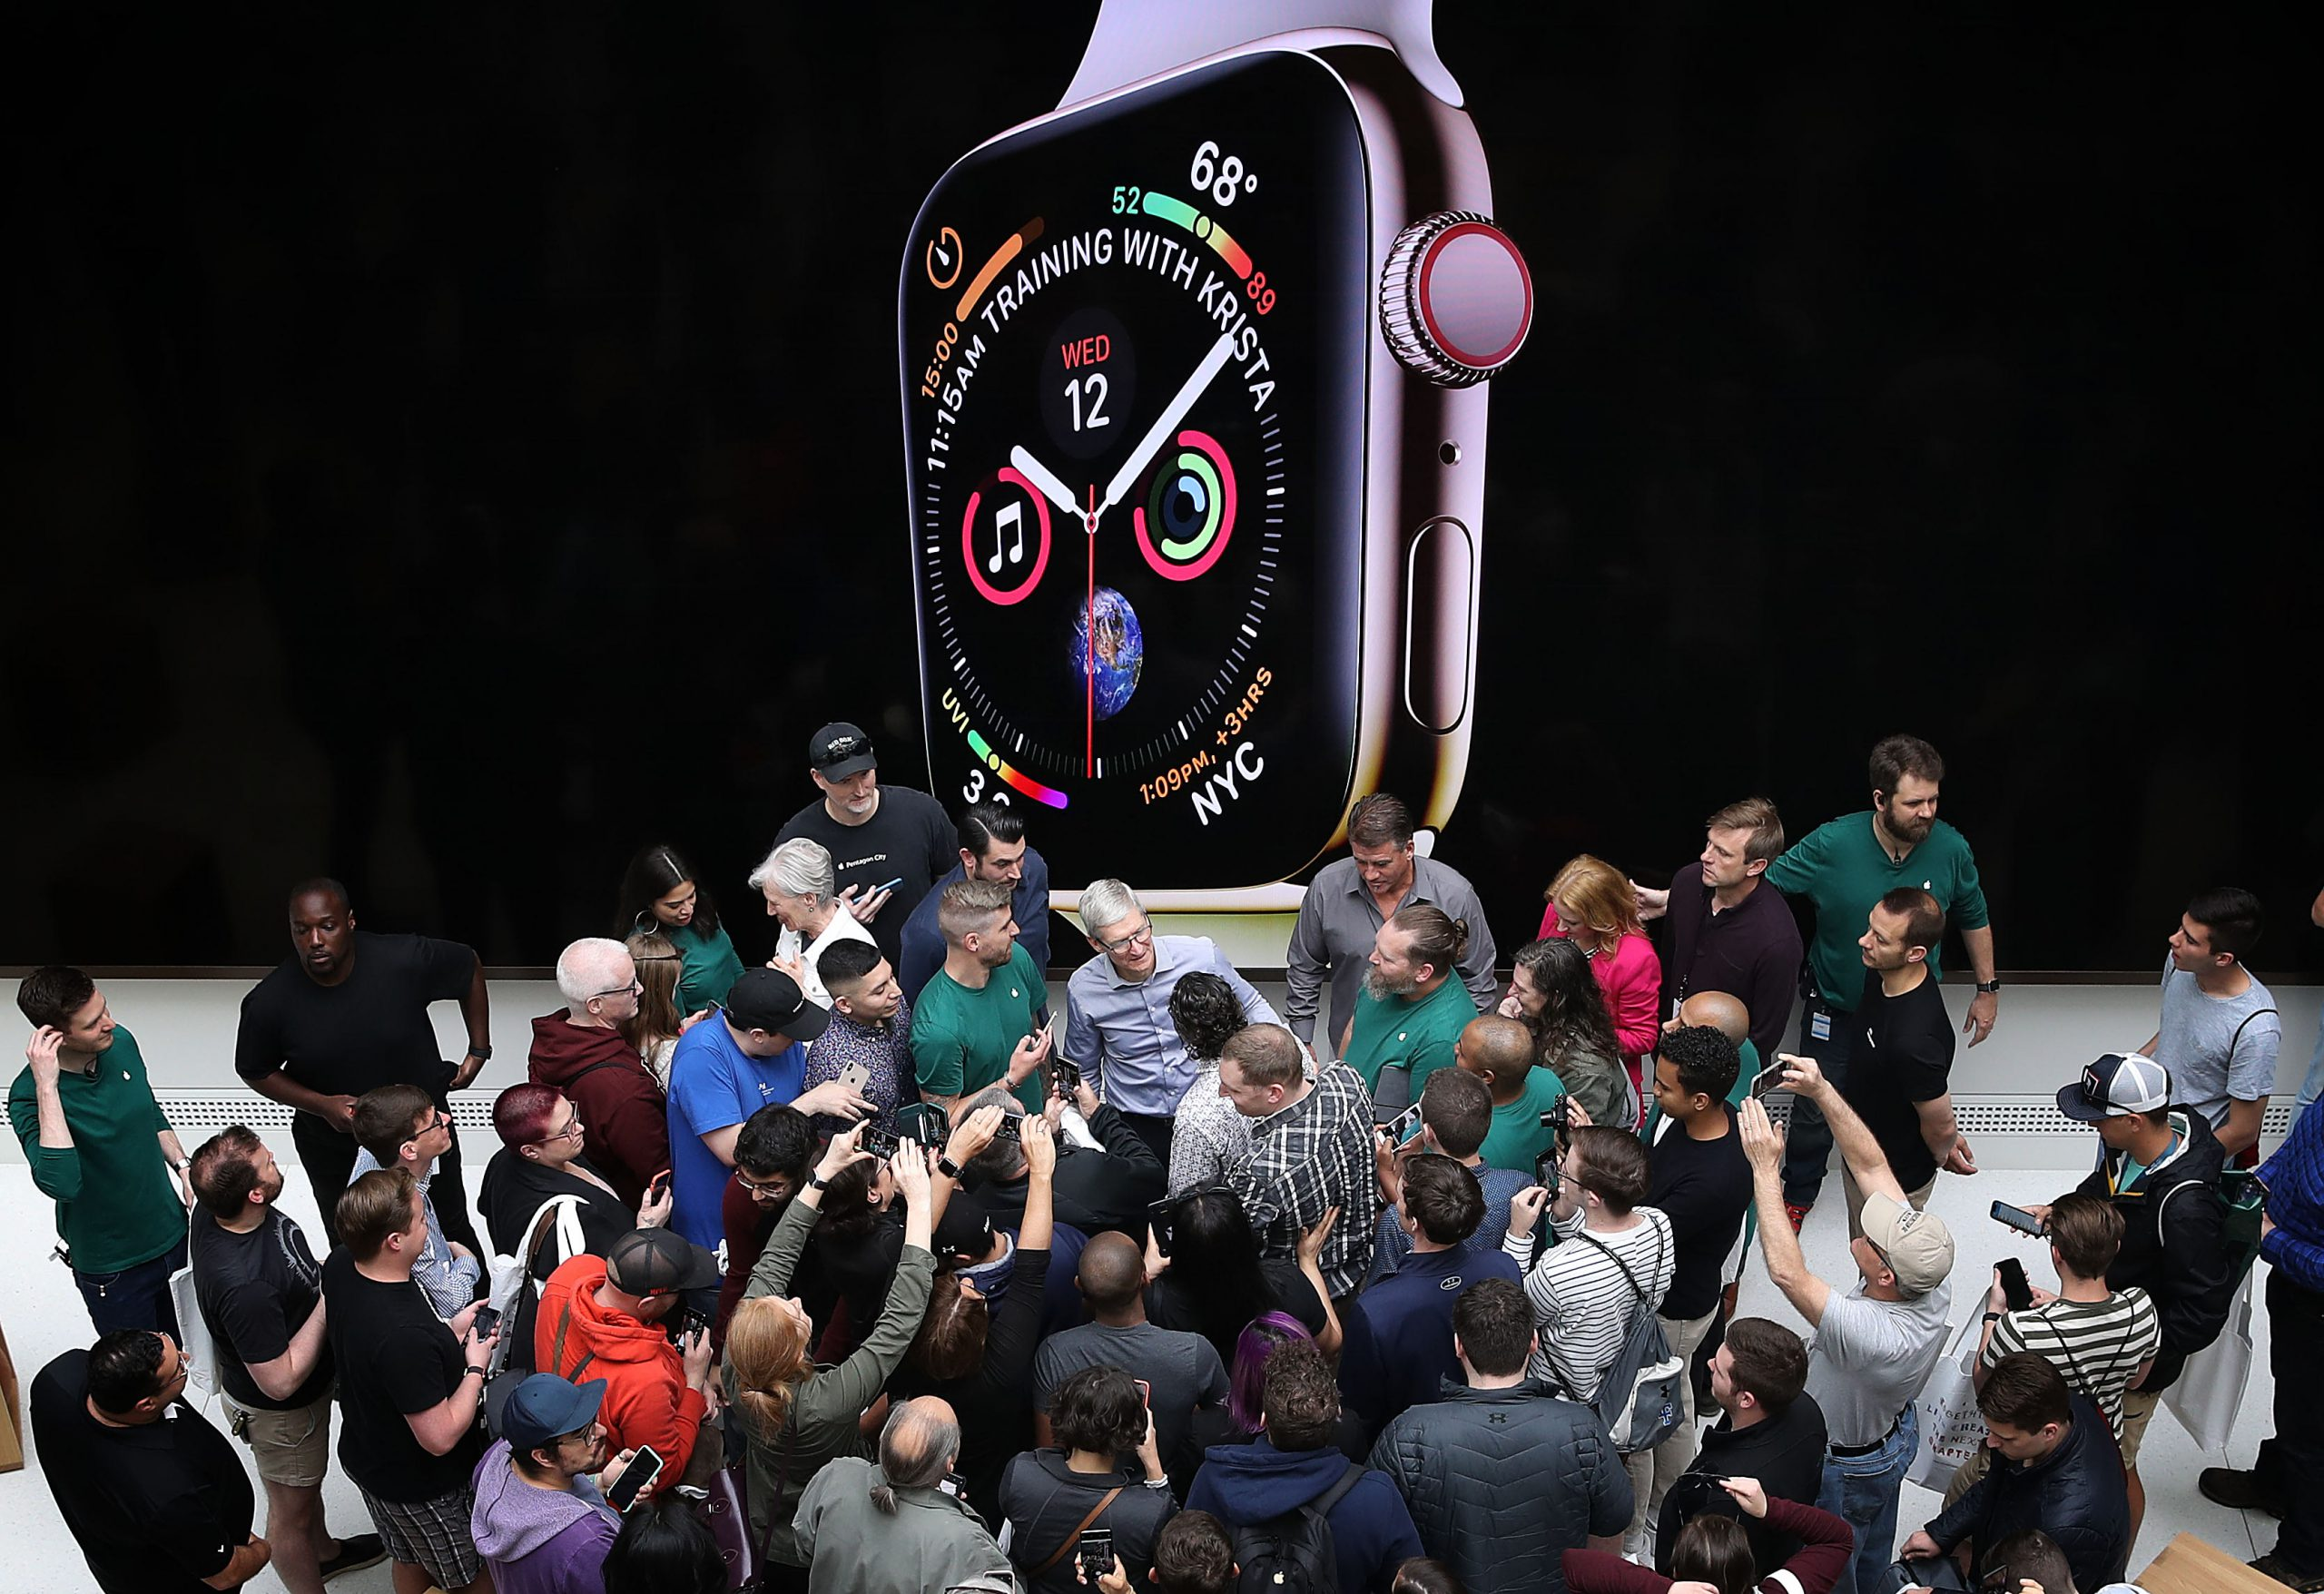 Value is beating growth only because of the way Apple is classified